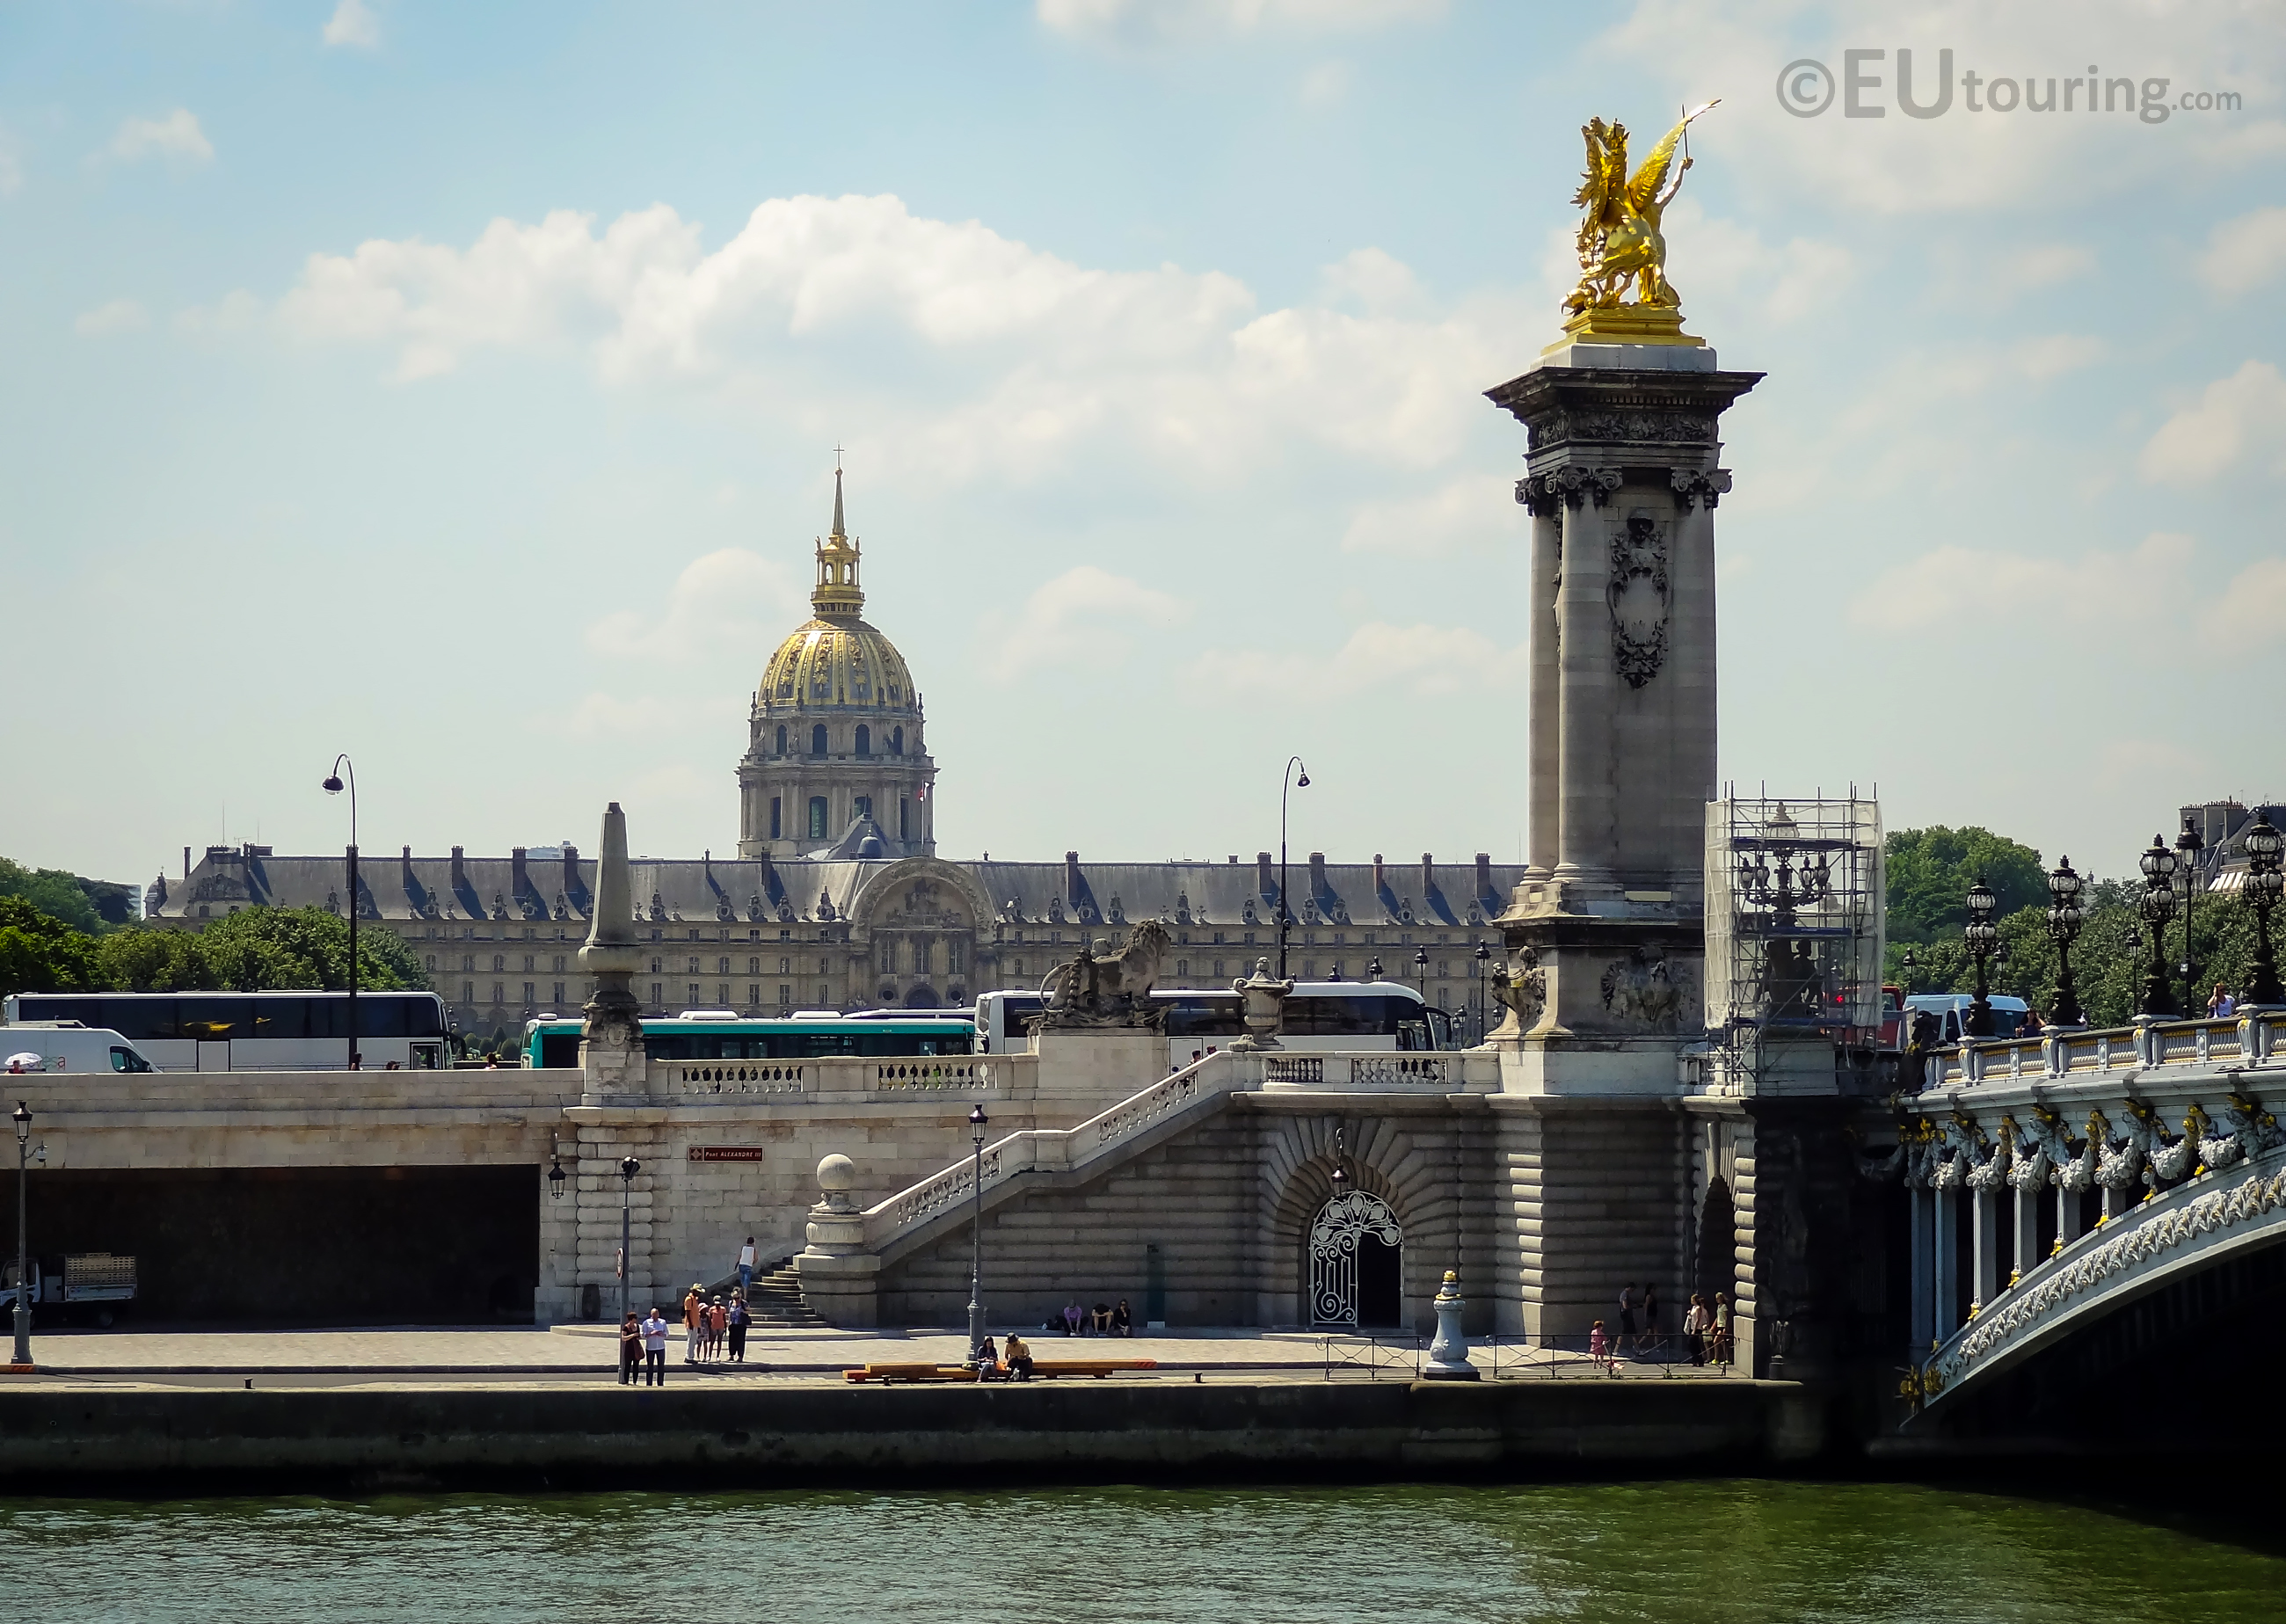 Les Invalides and Pont Alexandre III